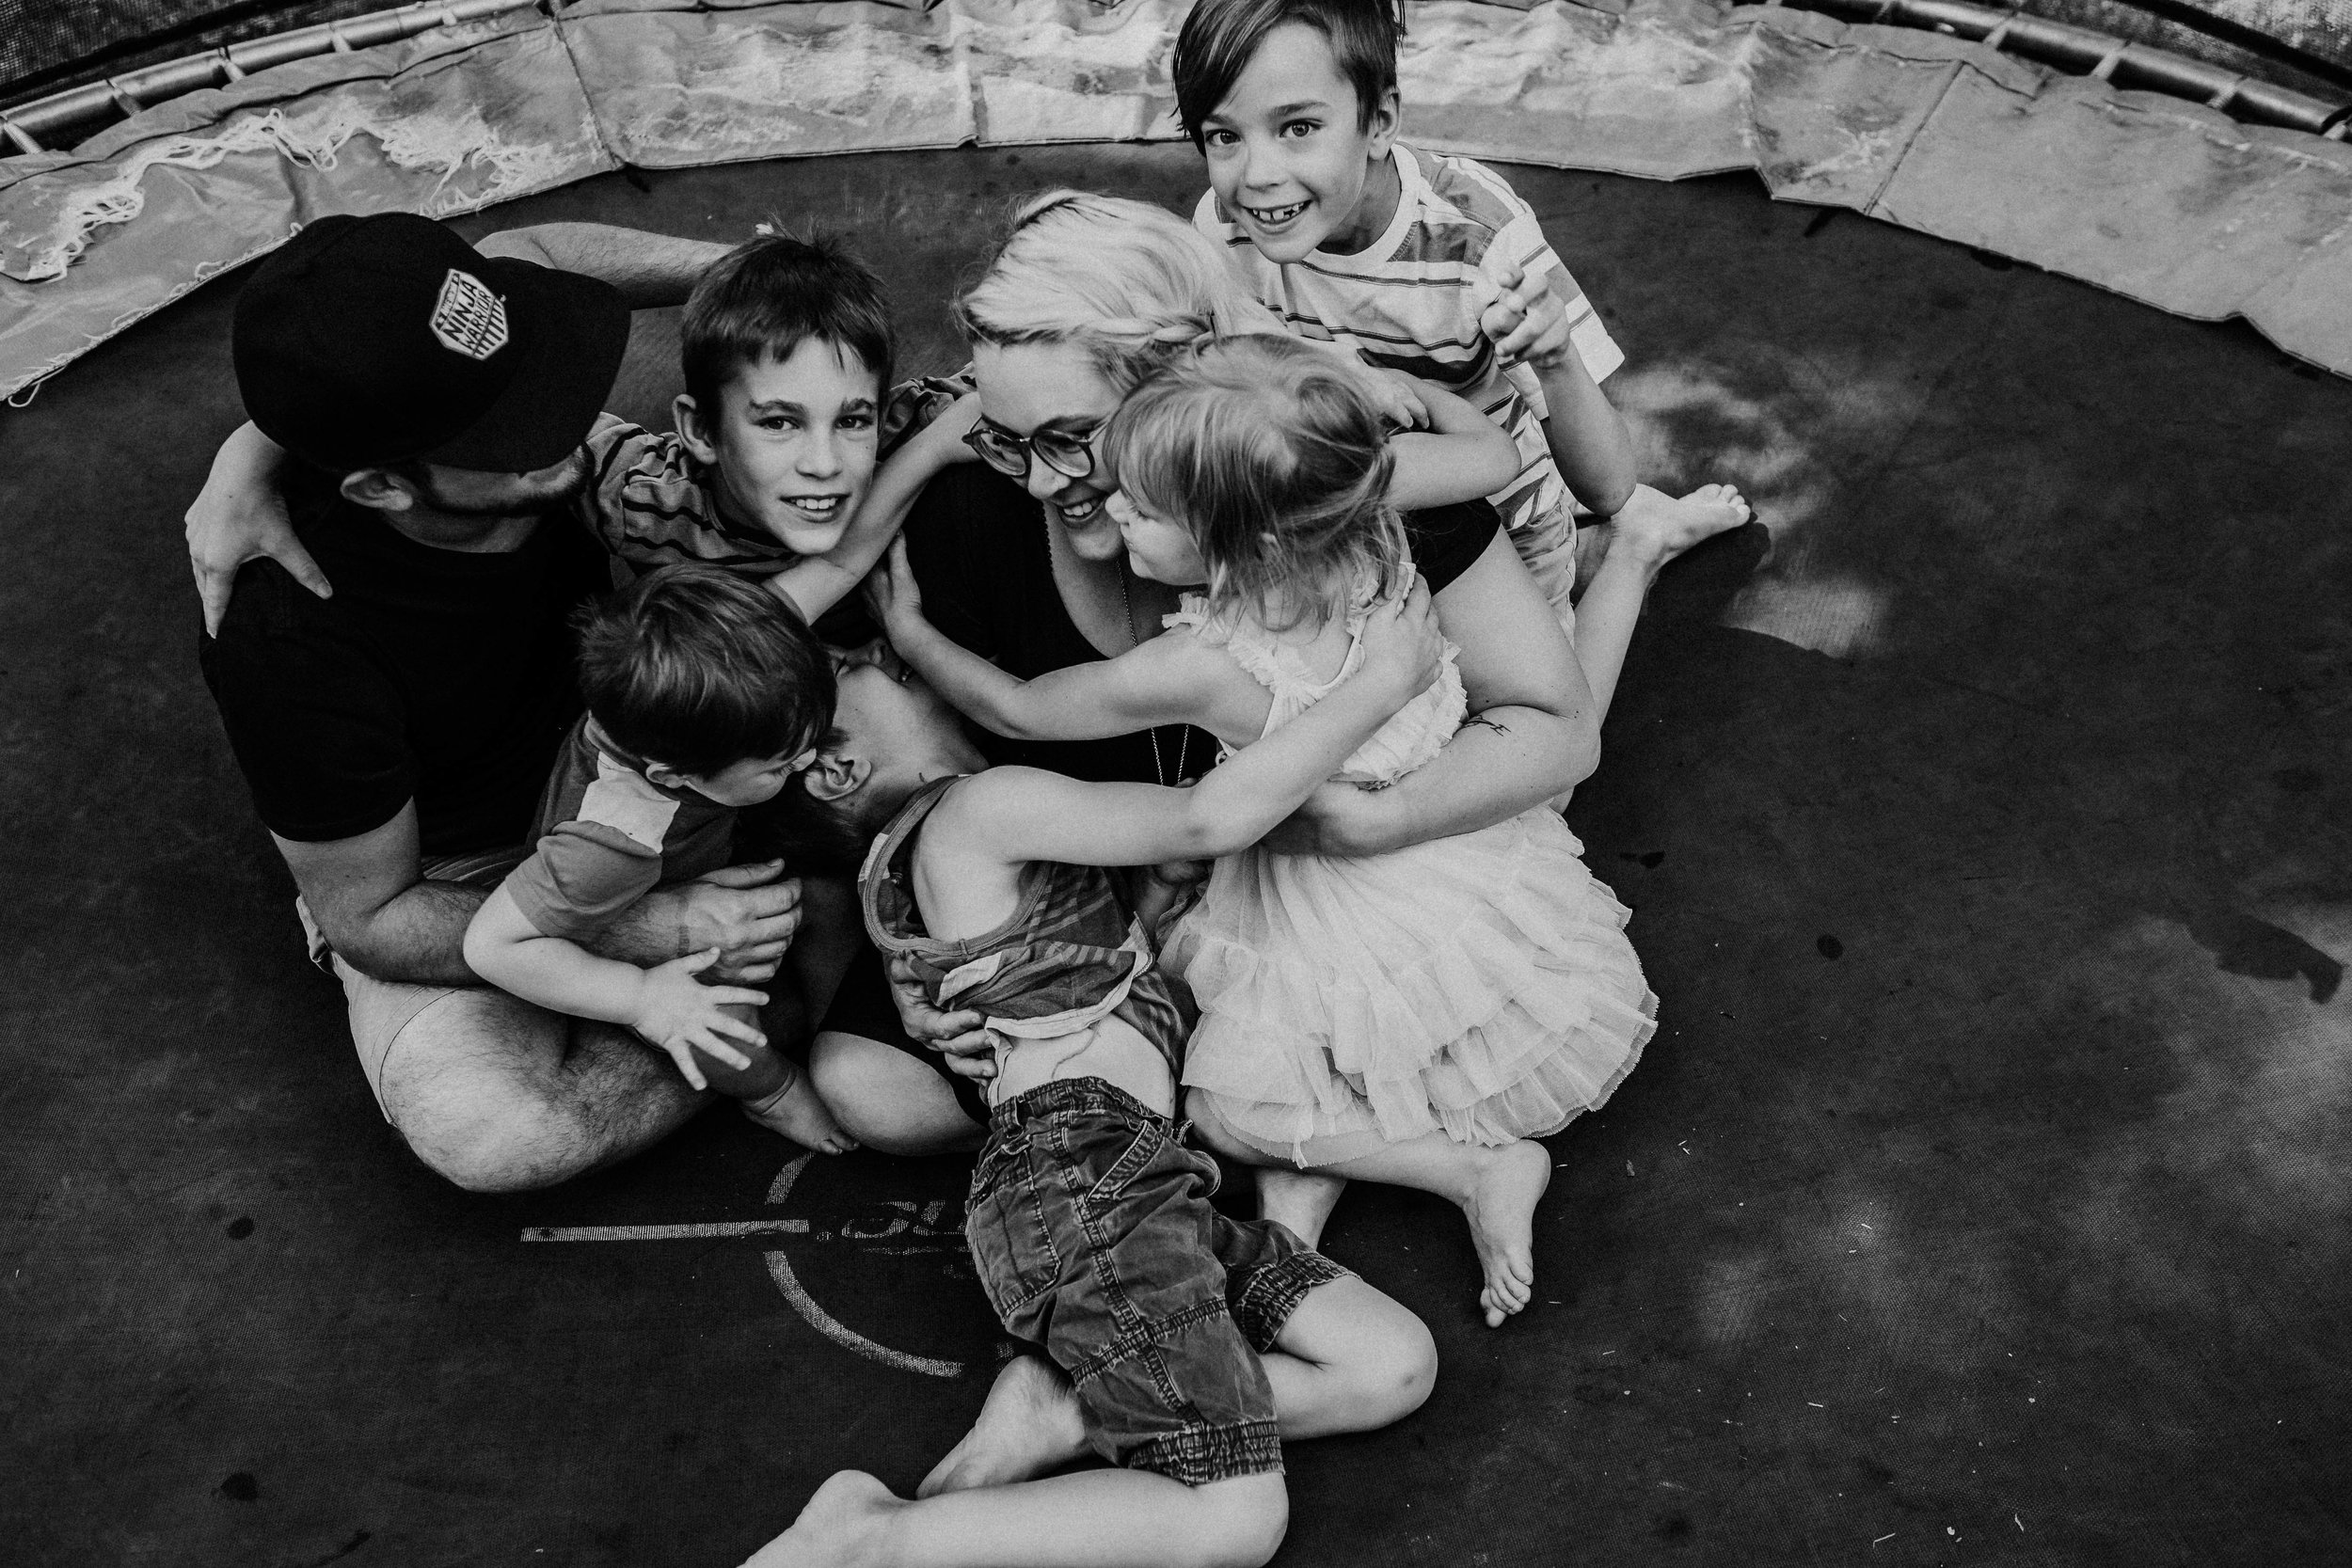 The family laughing and cuddling together on the trampoline in black and white.  The Carter Family : Summer in the Backyard | Hannahill Photography | Kansas City, MO | Family photography lifestyle photographer | Wedding photographer Durham North Carolina Raleigh | Birth photographer Documentary